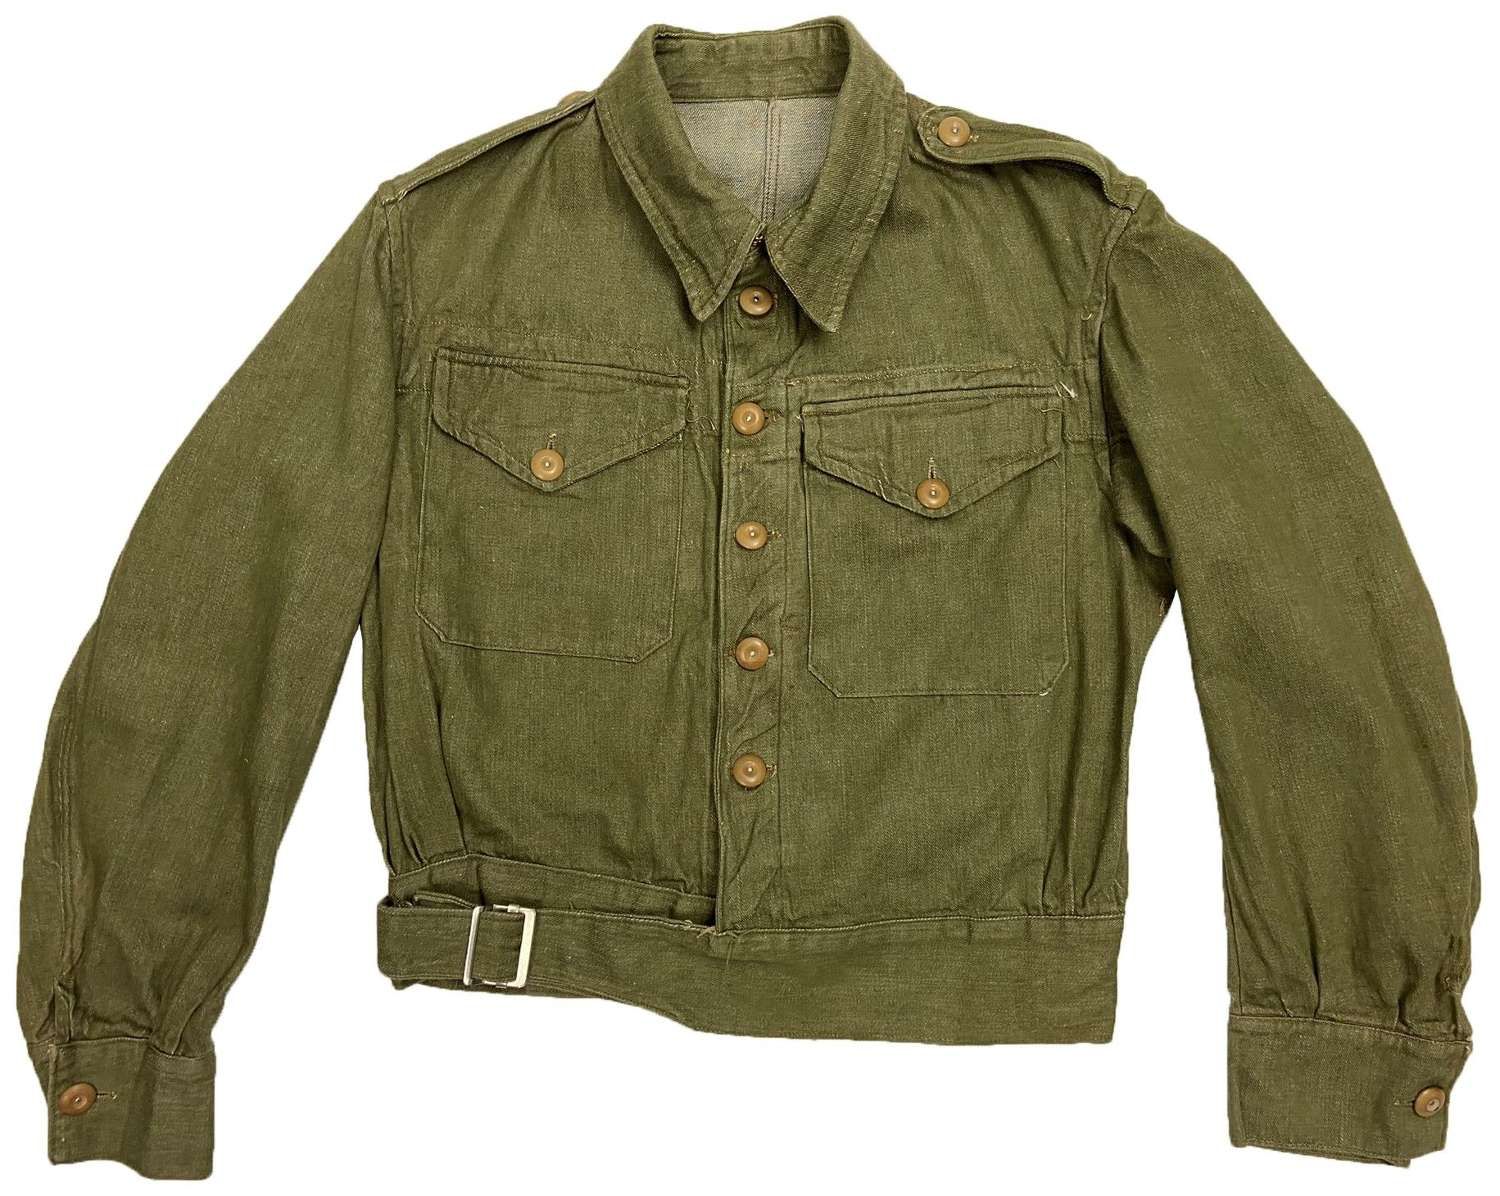 Original 1945 Dated British Army Denim Battledress Blouse - Size 4